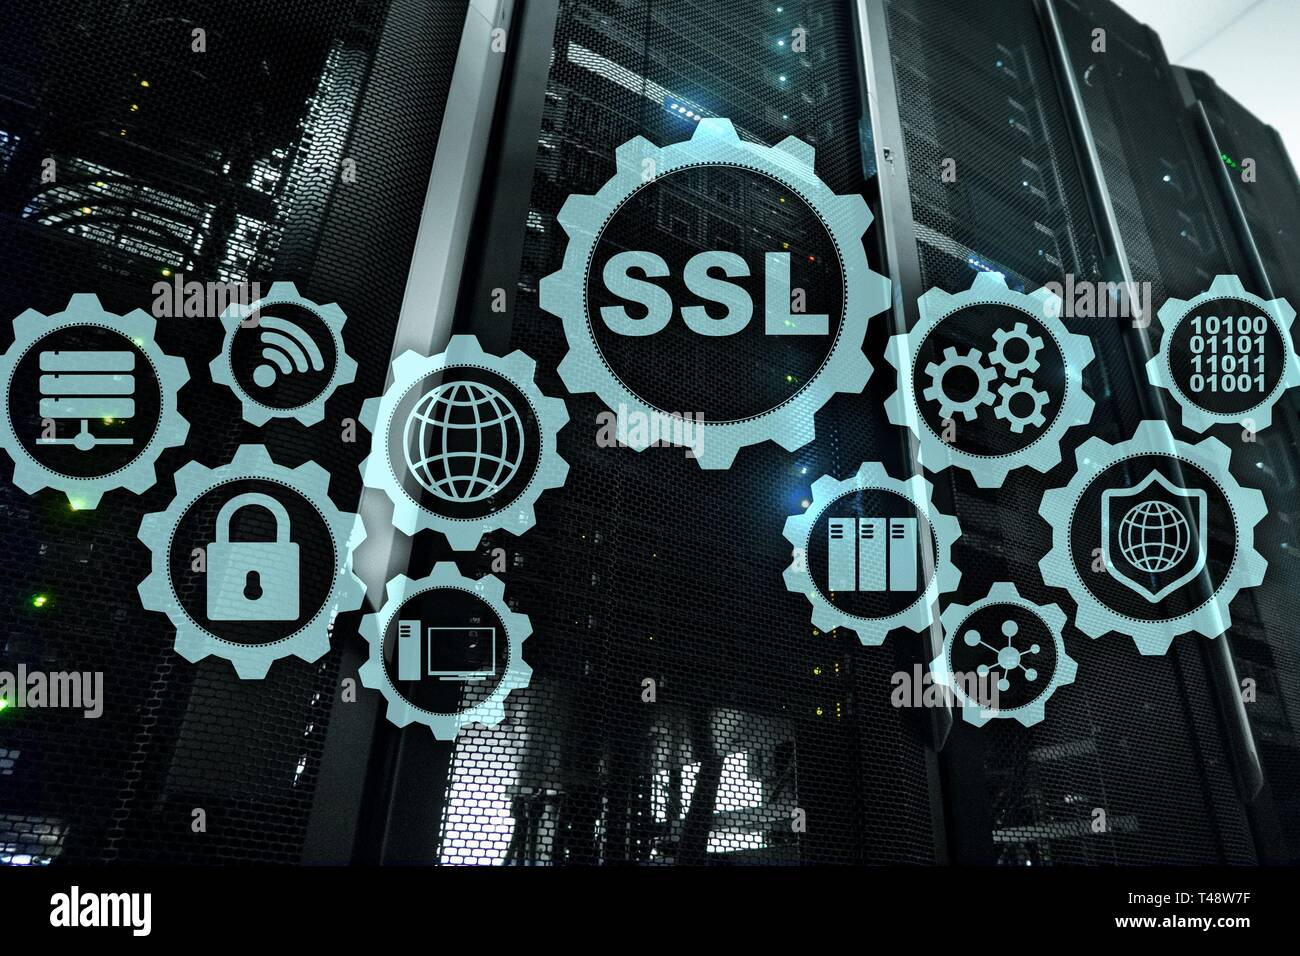 SSL Secure Sockets Layer concept. Cryptographic protocols provide secured communications. Server room background. - Stock Image